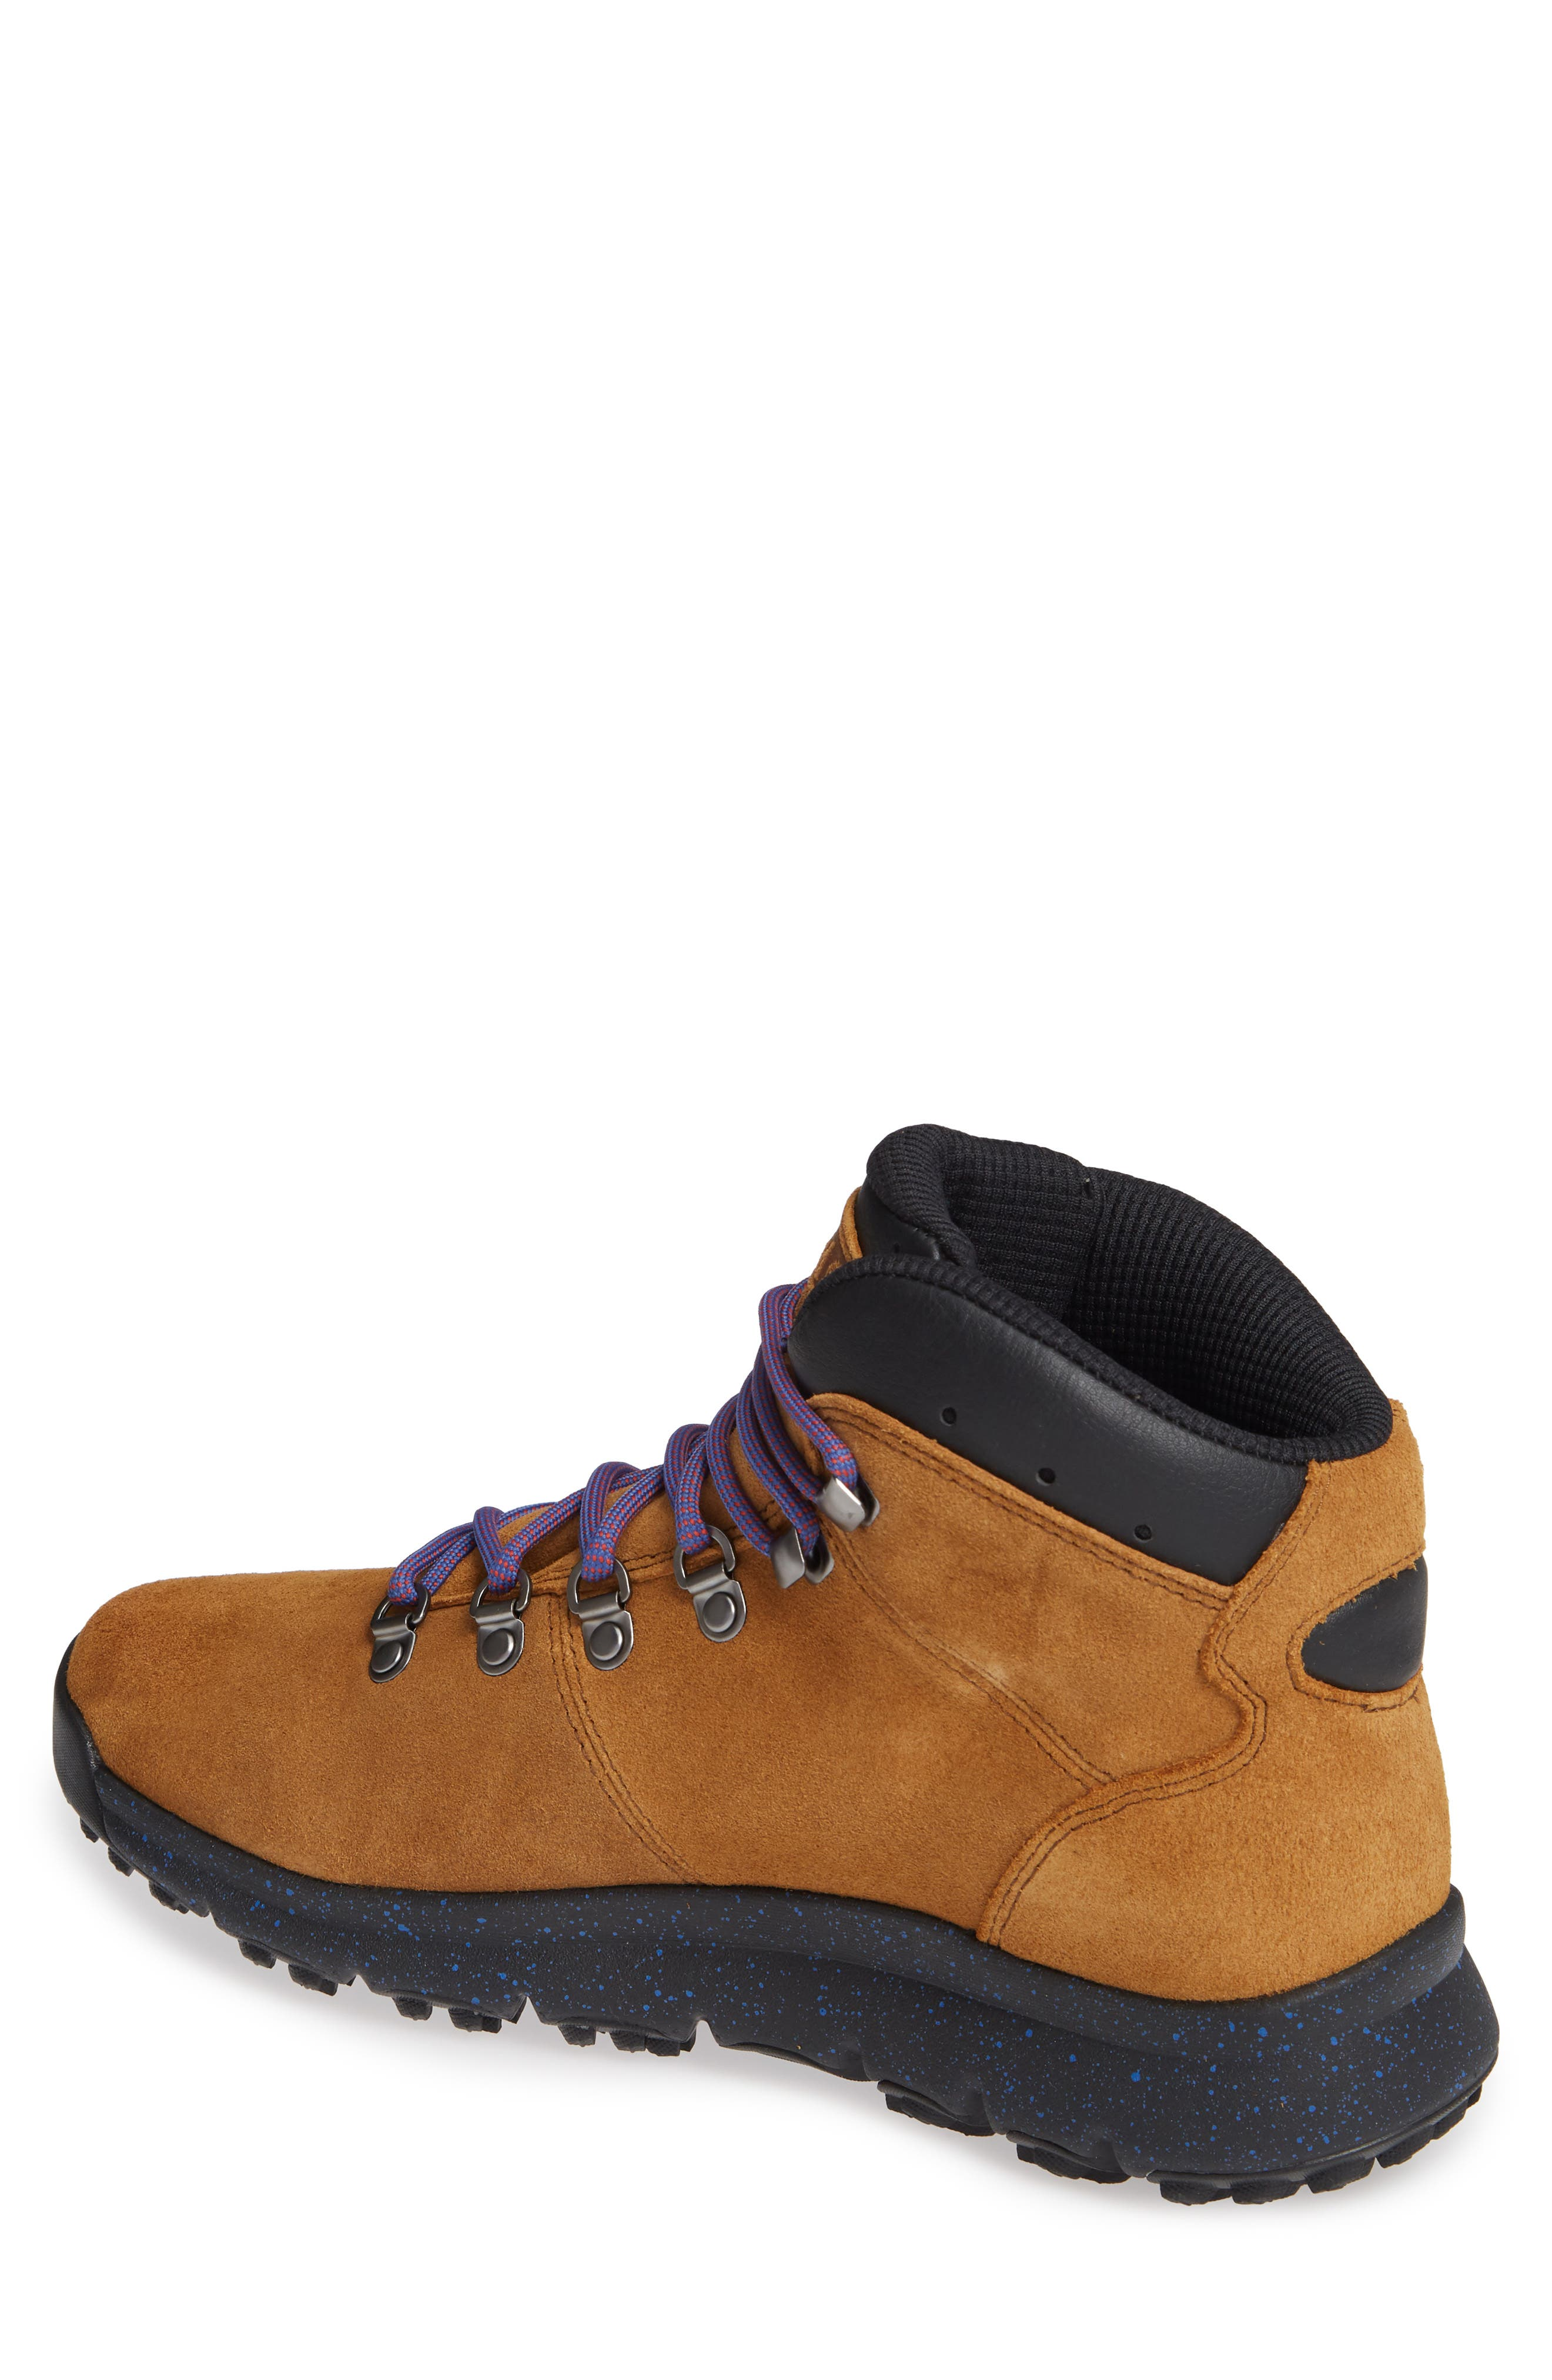 World Hiker Waterproof Boot,                             Alternate thumbnail 2, color,                             210